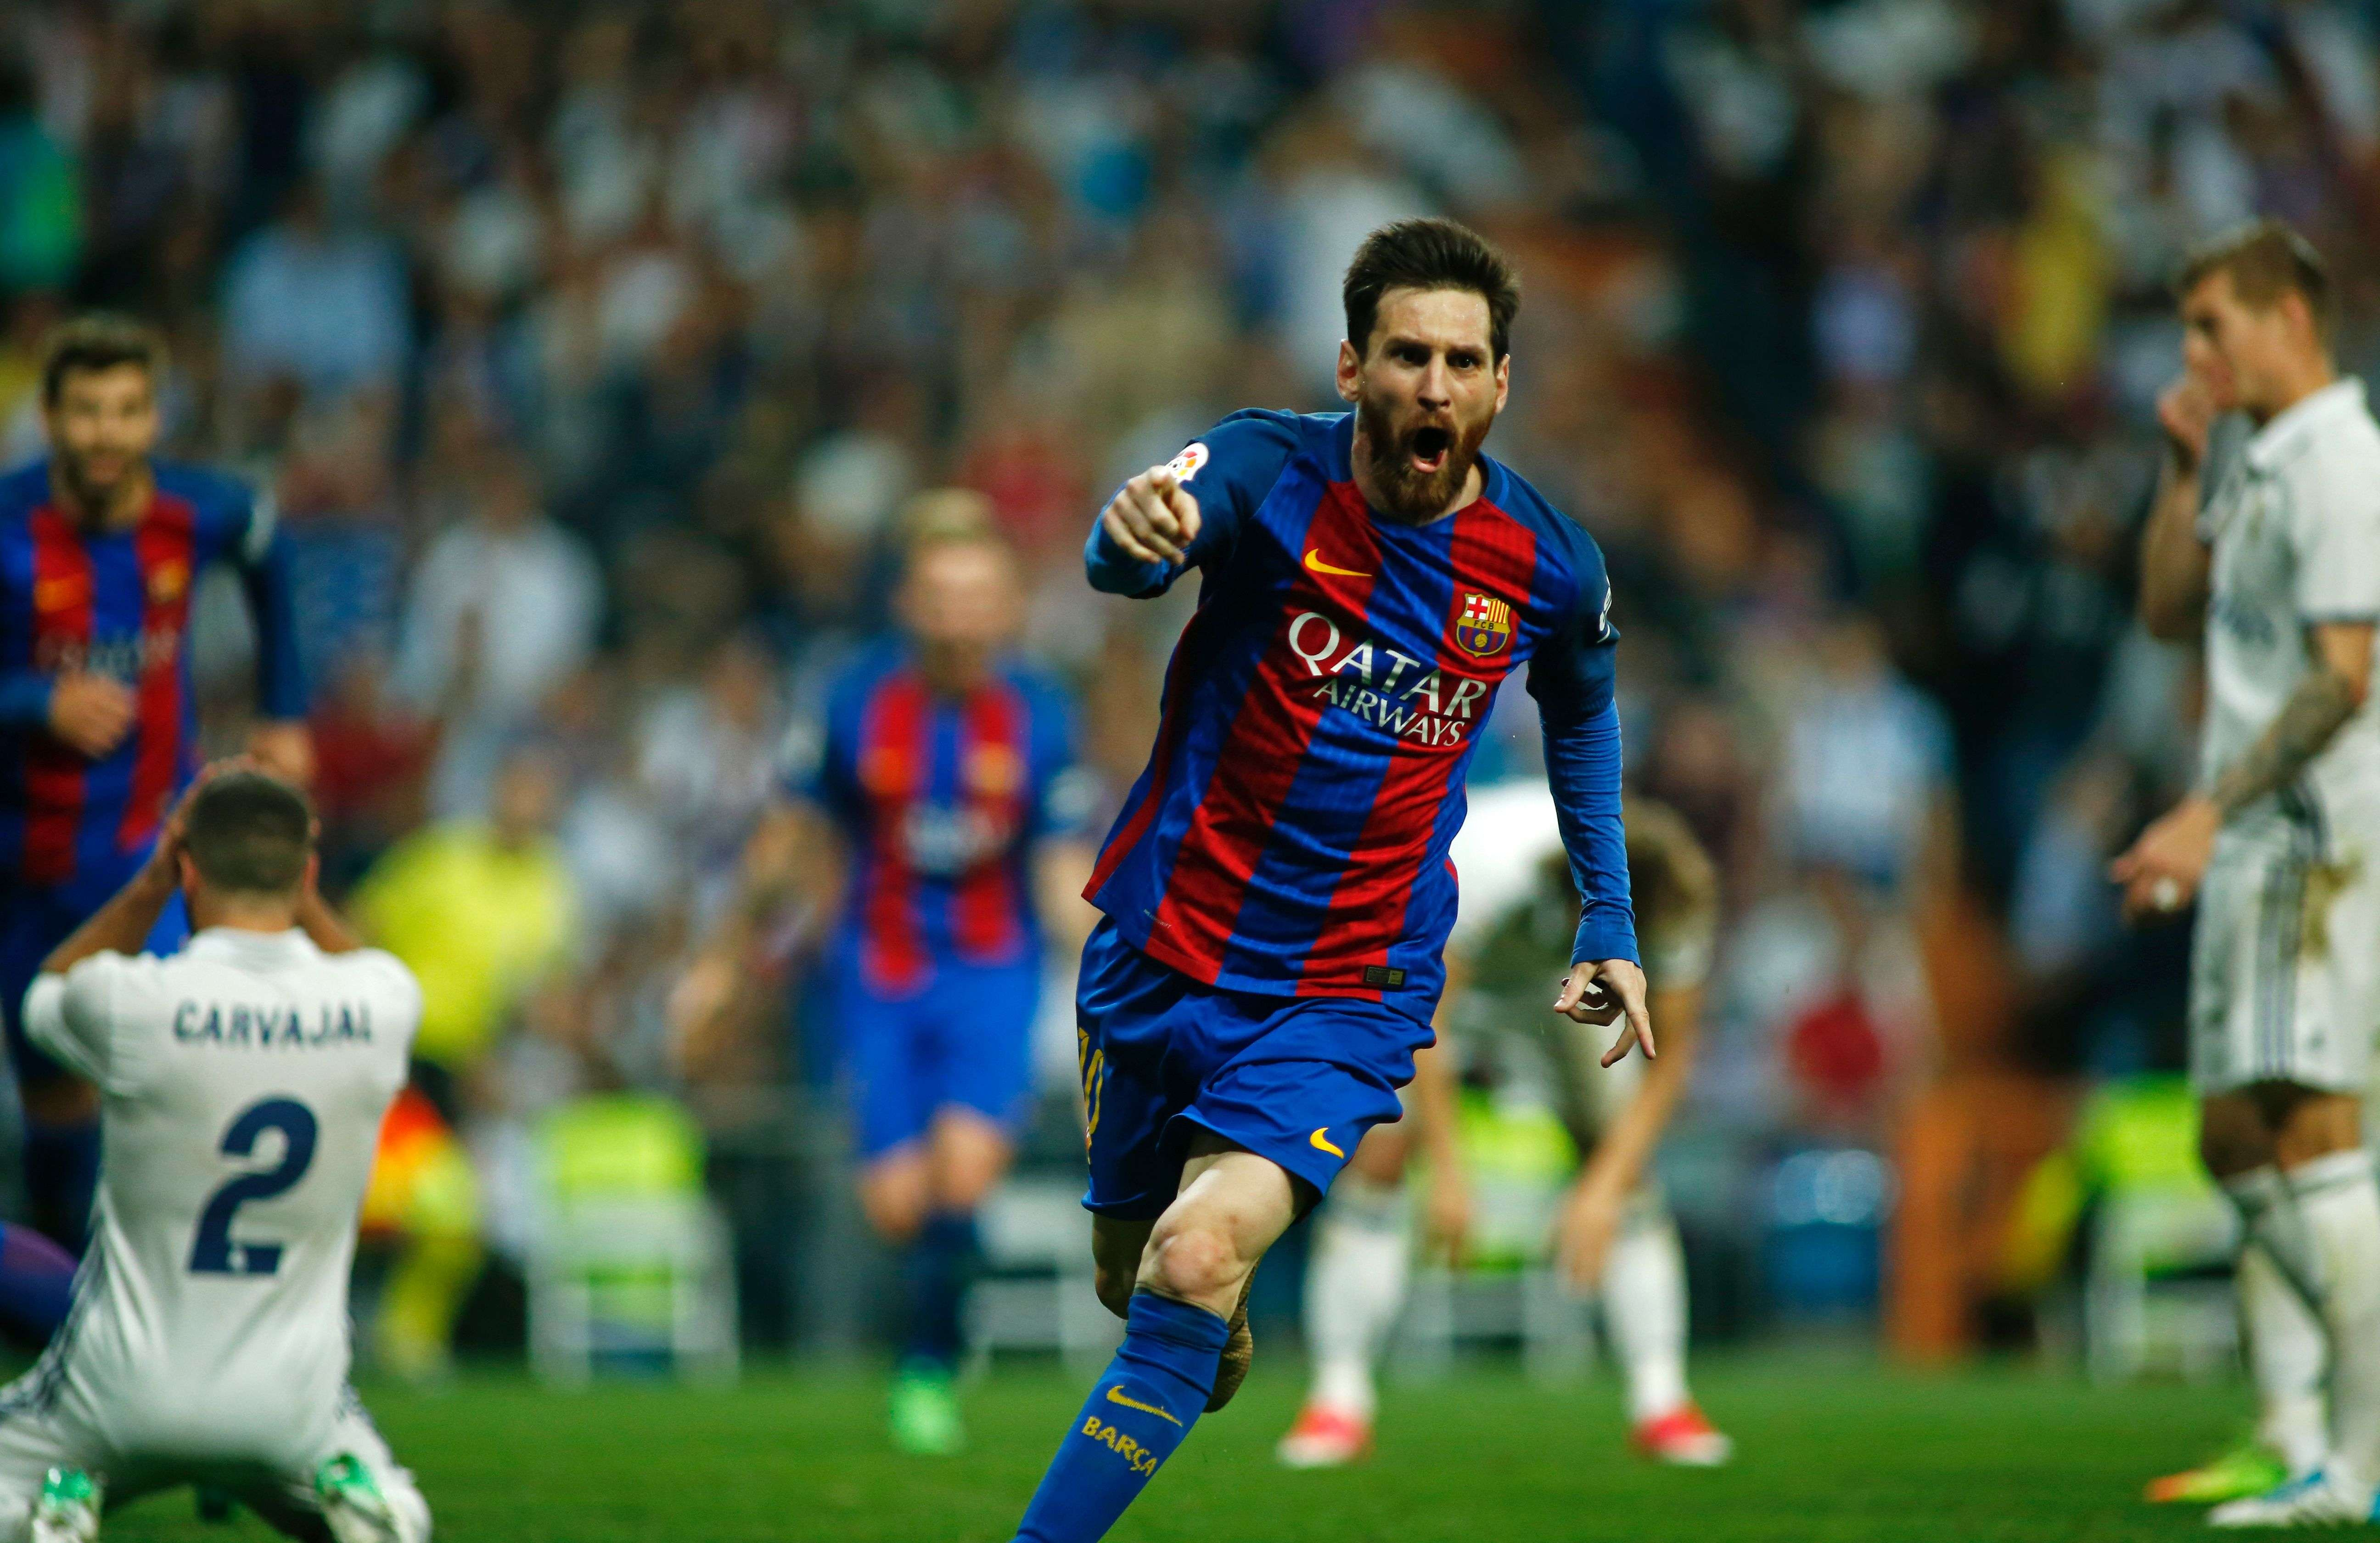 684c708ec20 'He is the best player in history' – Messi notches his 500th goal to win  Clasico for Barcelona and leave Ronaldo fuming | South China Morning Post